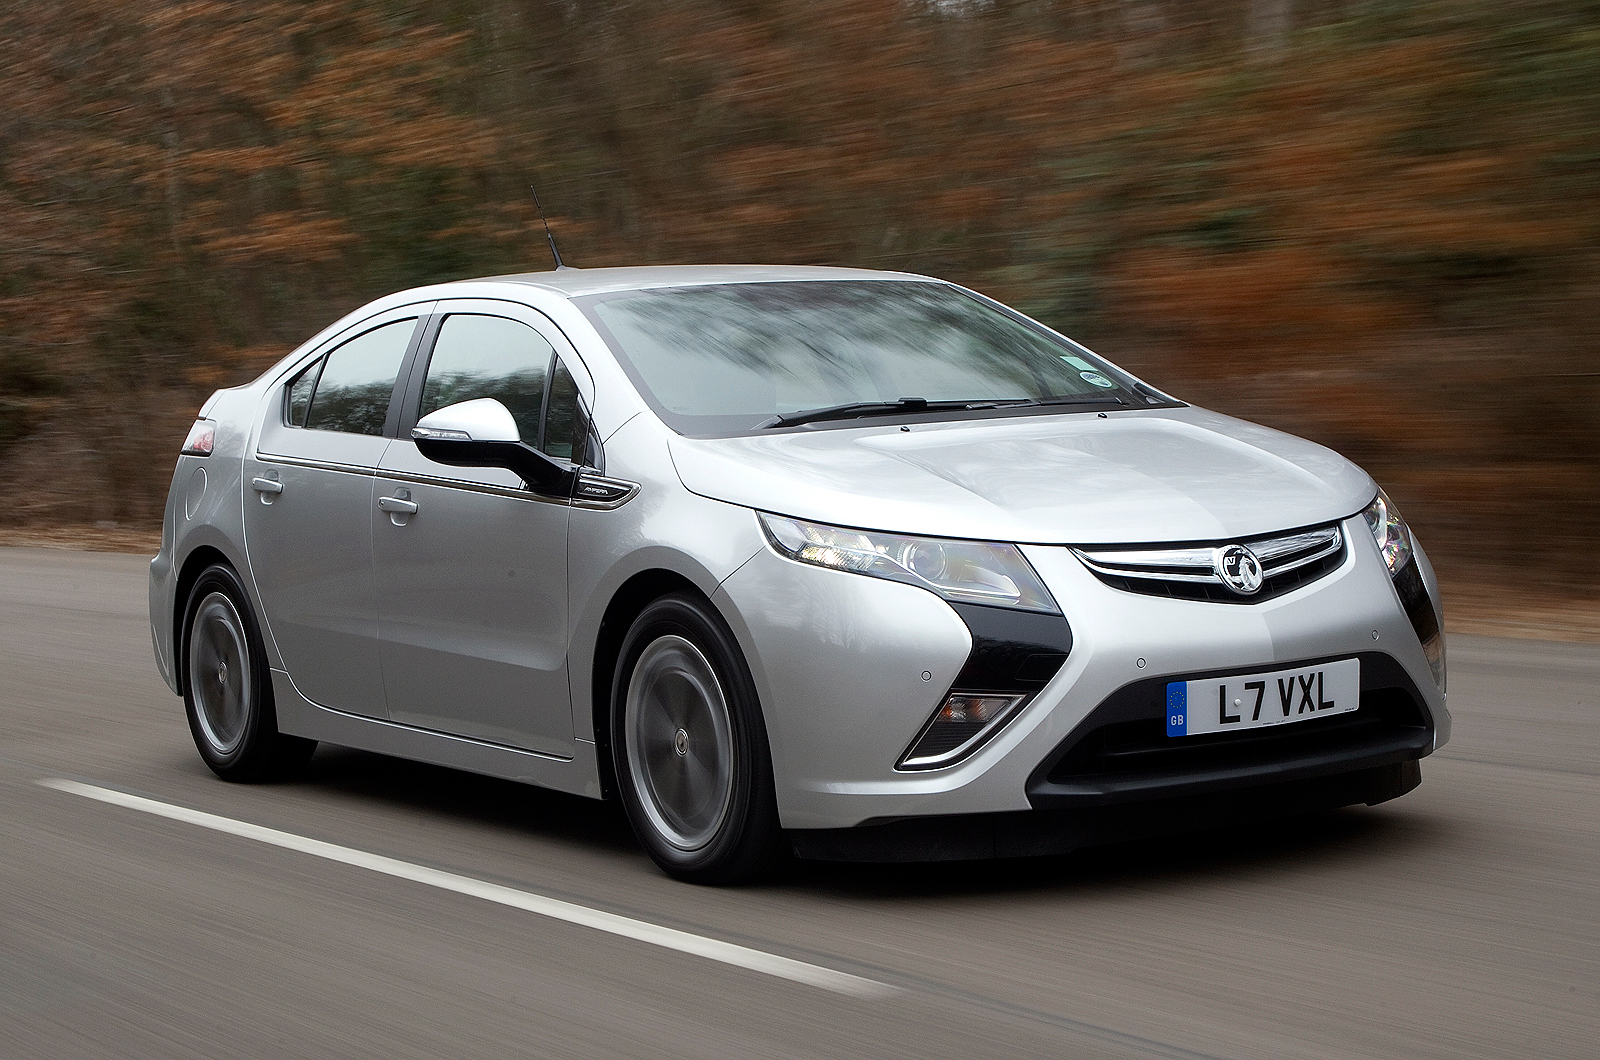 gear box mean machines the vauxhall ampera. Black Bedroom Furniture Sets. Home Design Ideas